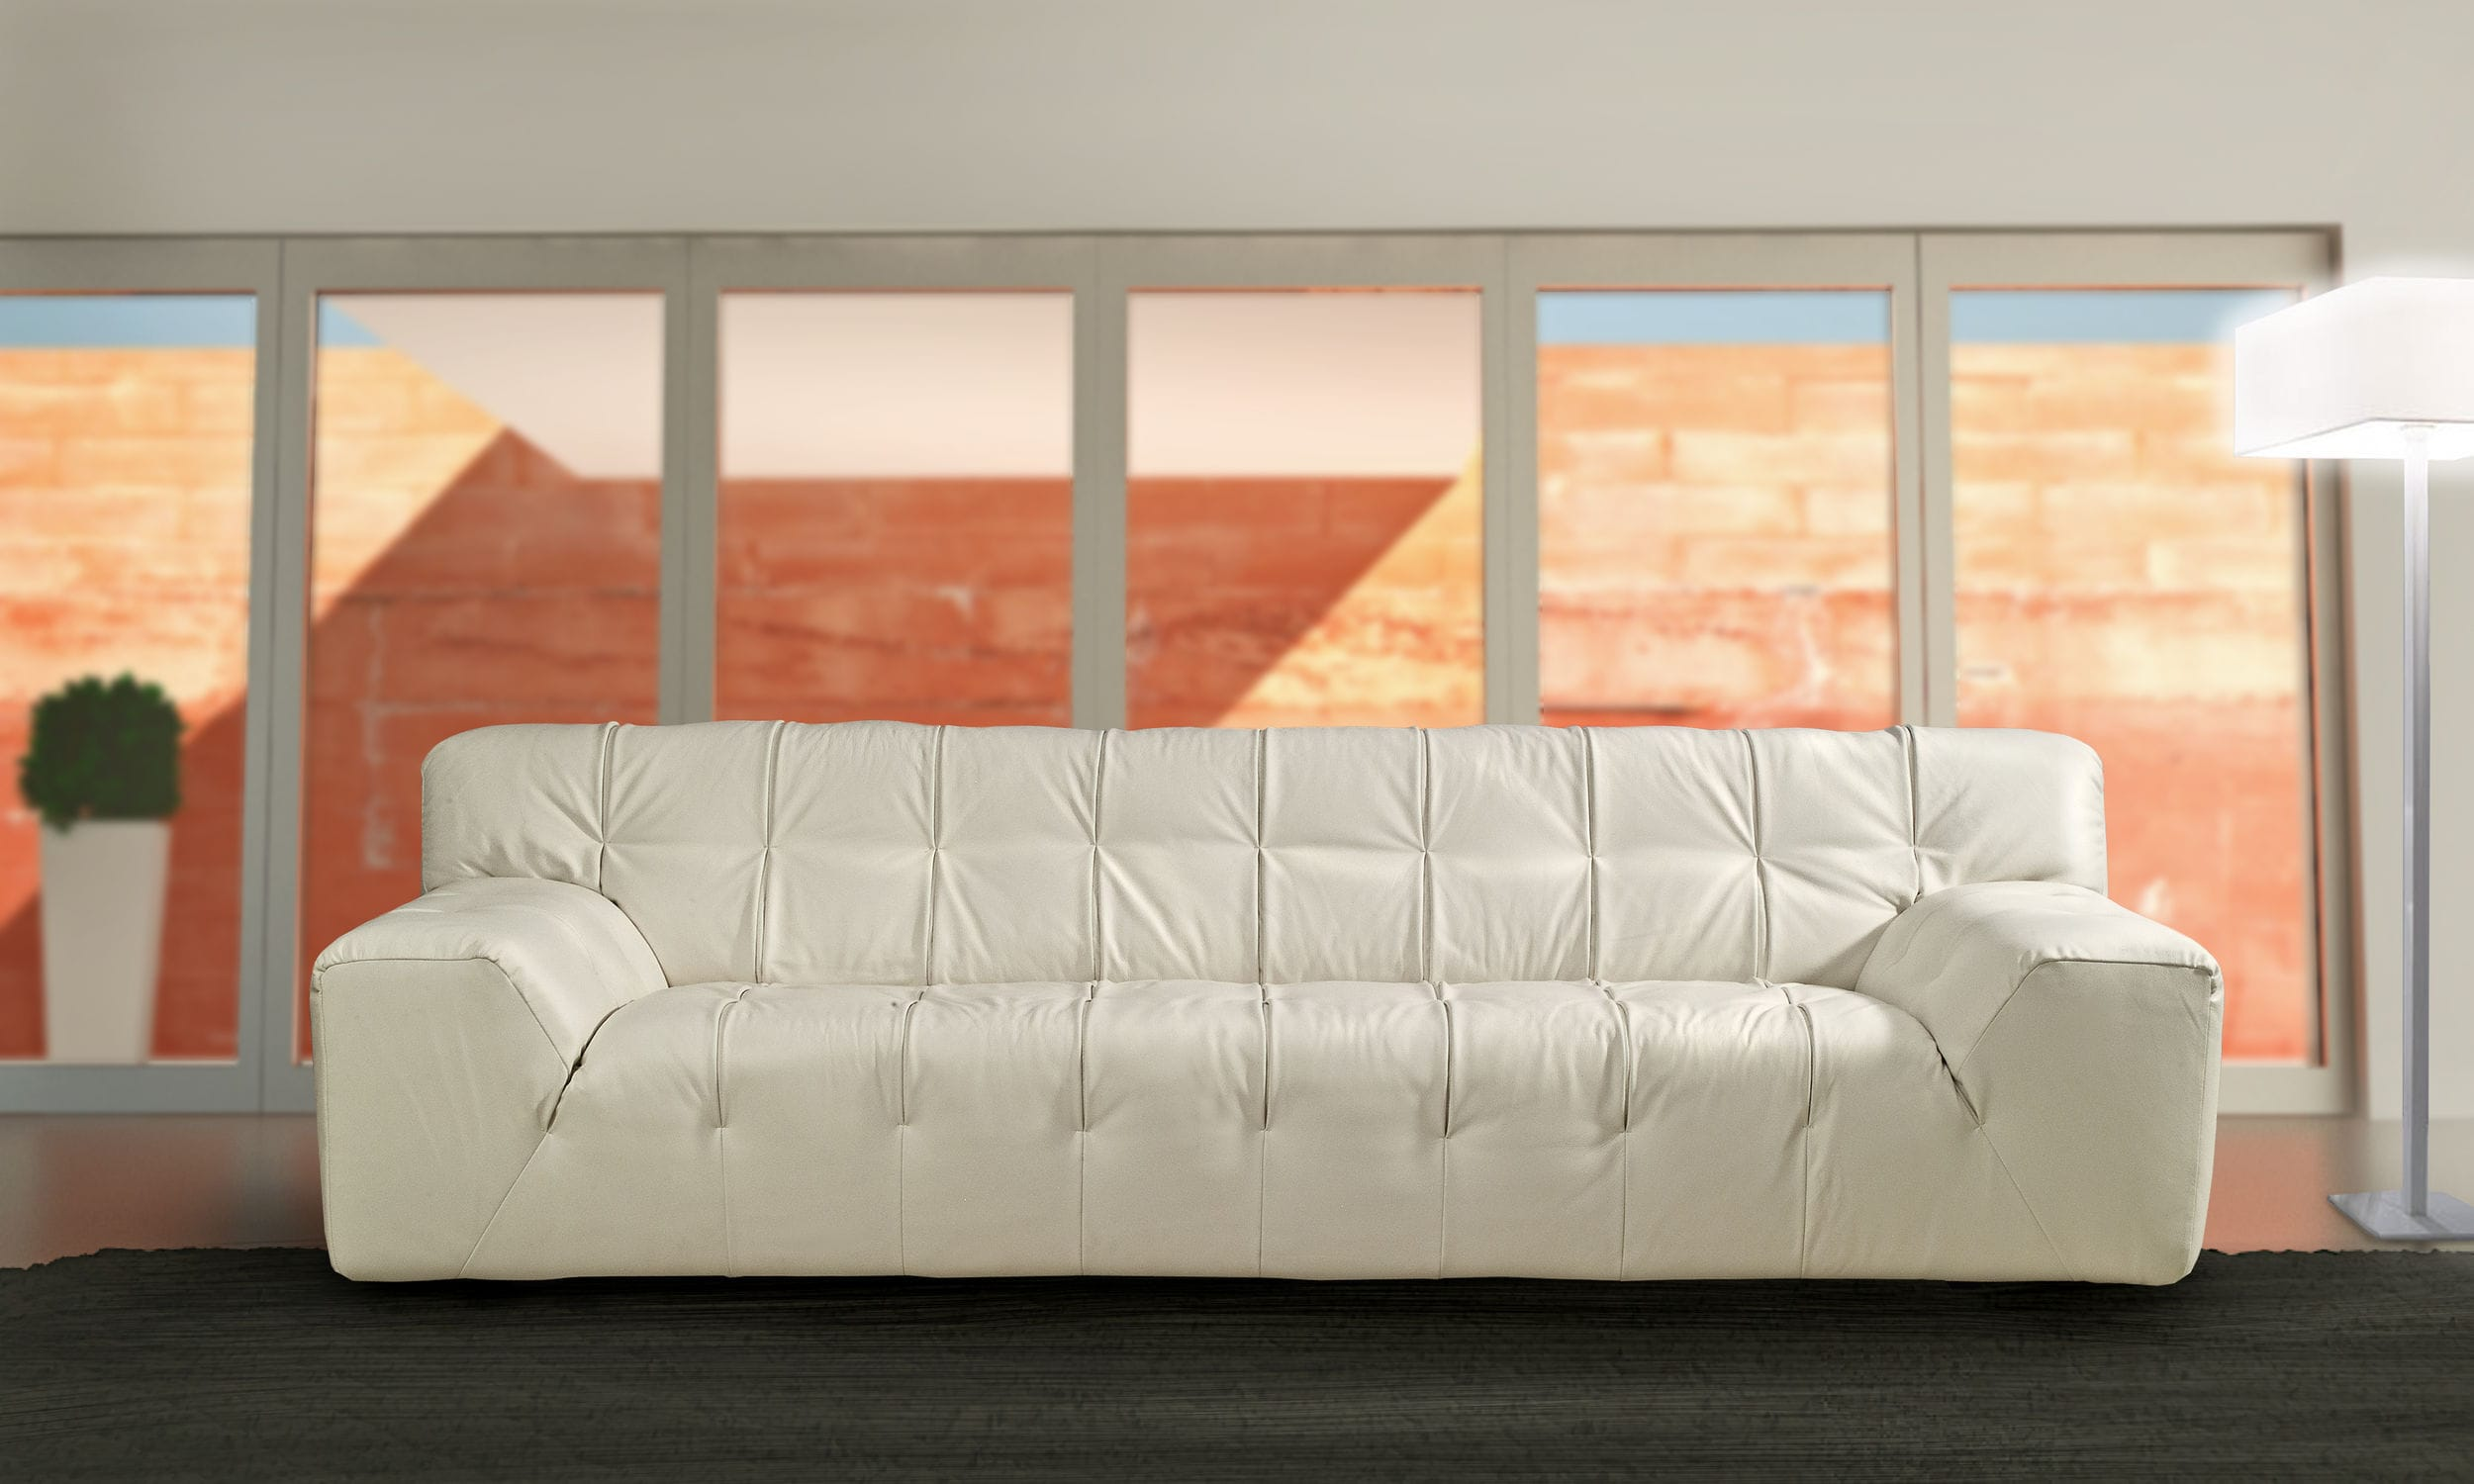 Contemporary sofa leather fabric for public buildings